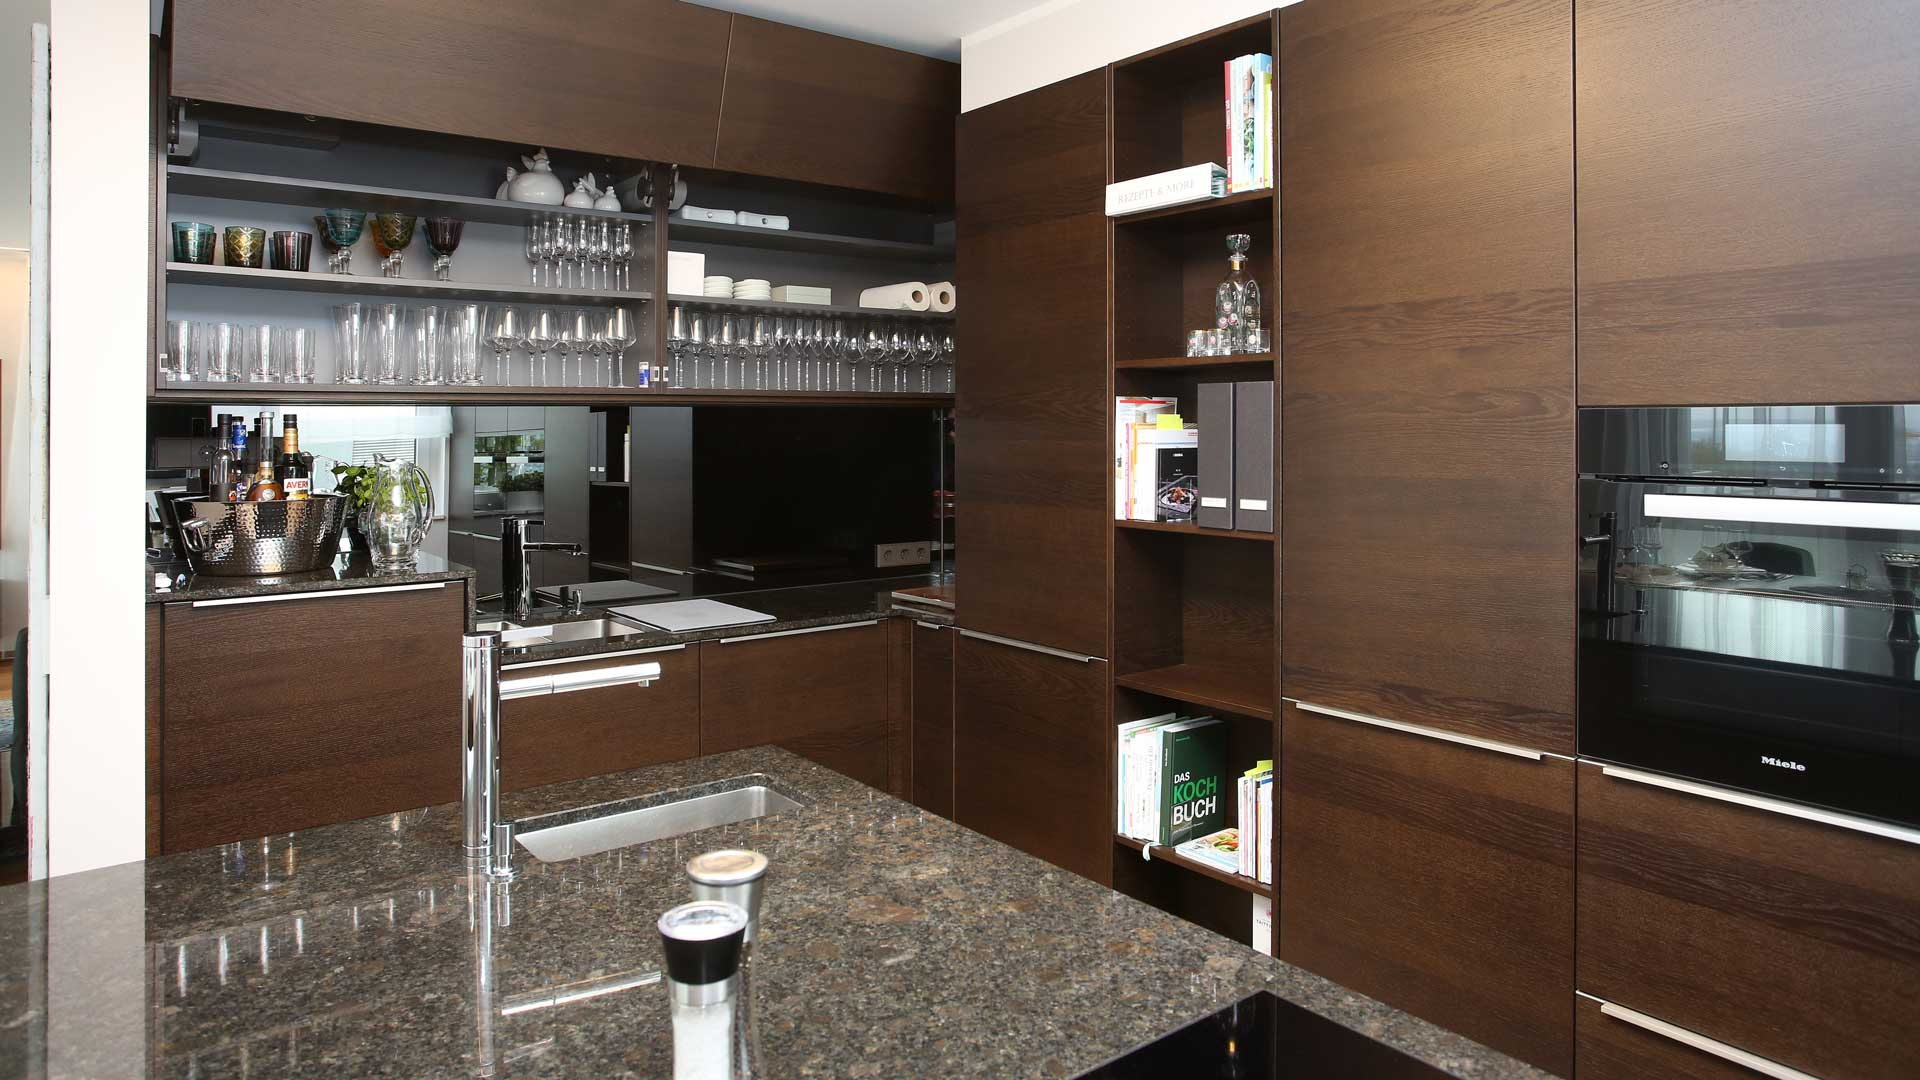 Full Size of Miele Küche Grand Gourmet Miele Küche Gourmet International Klein Miele Küche Holz Miele Küche Oelde Küche Miele Küche